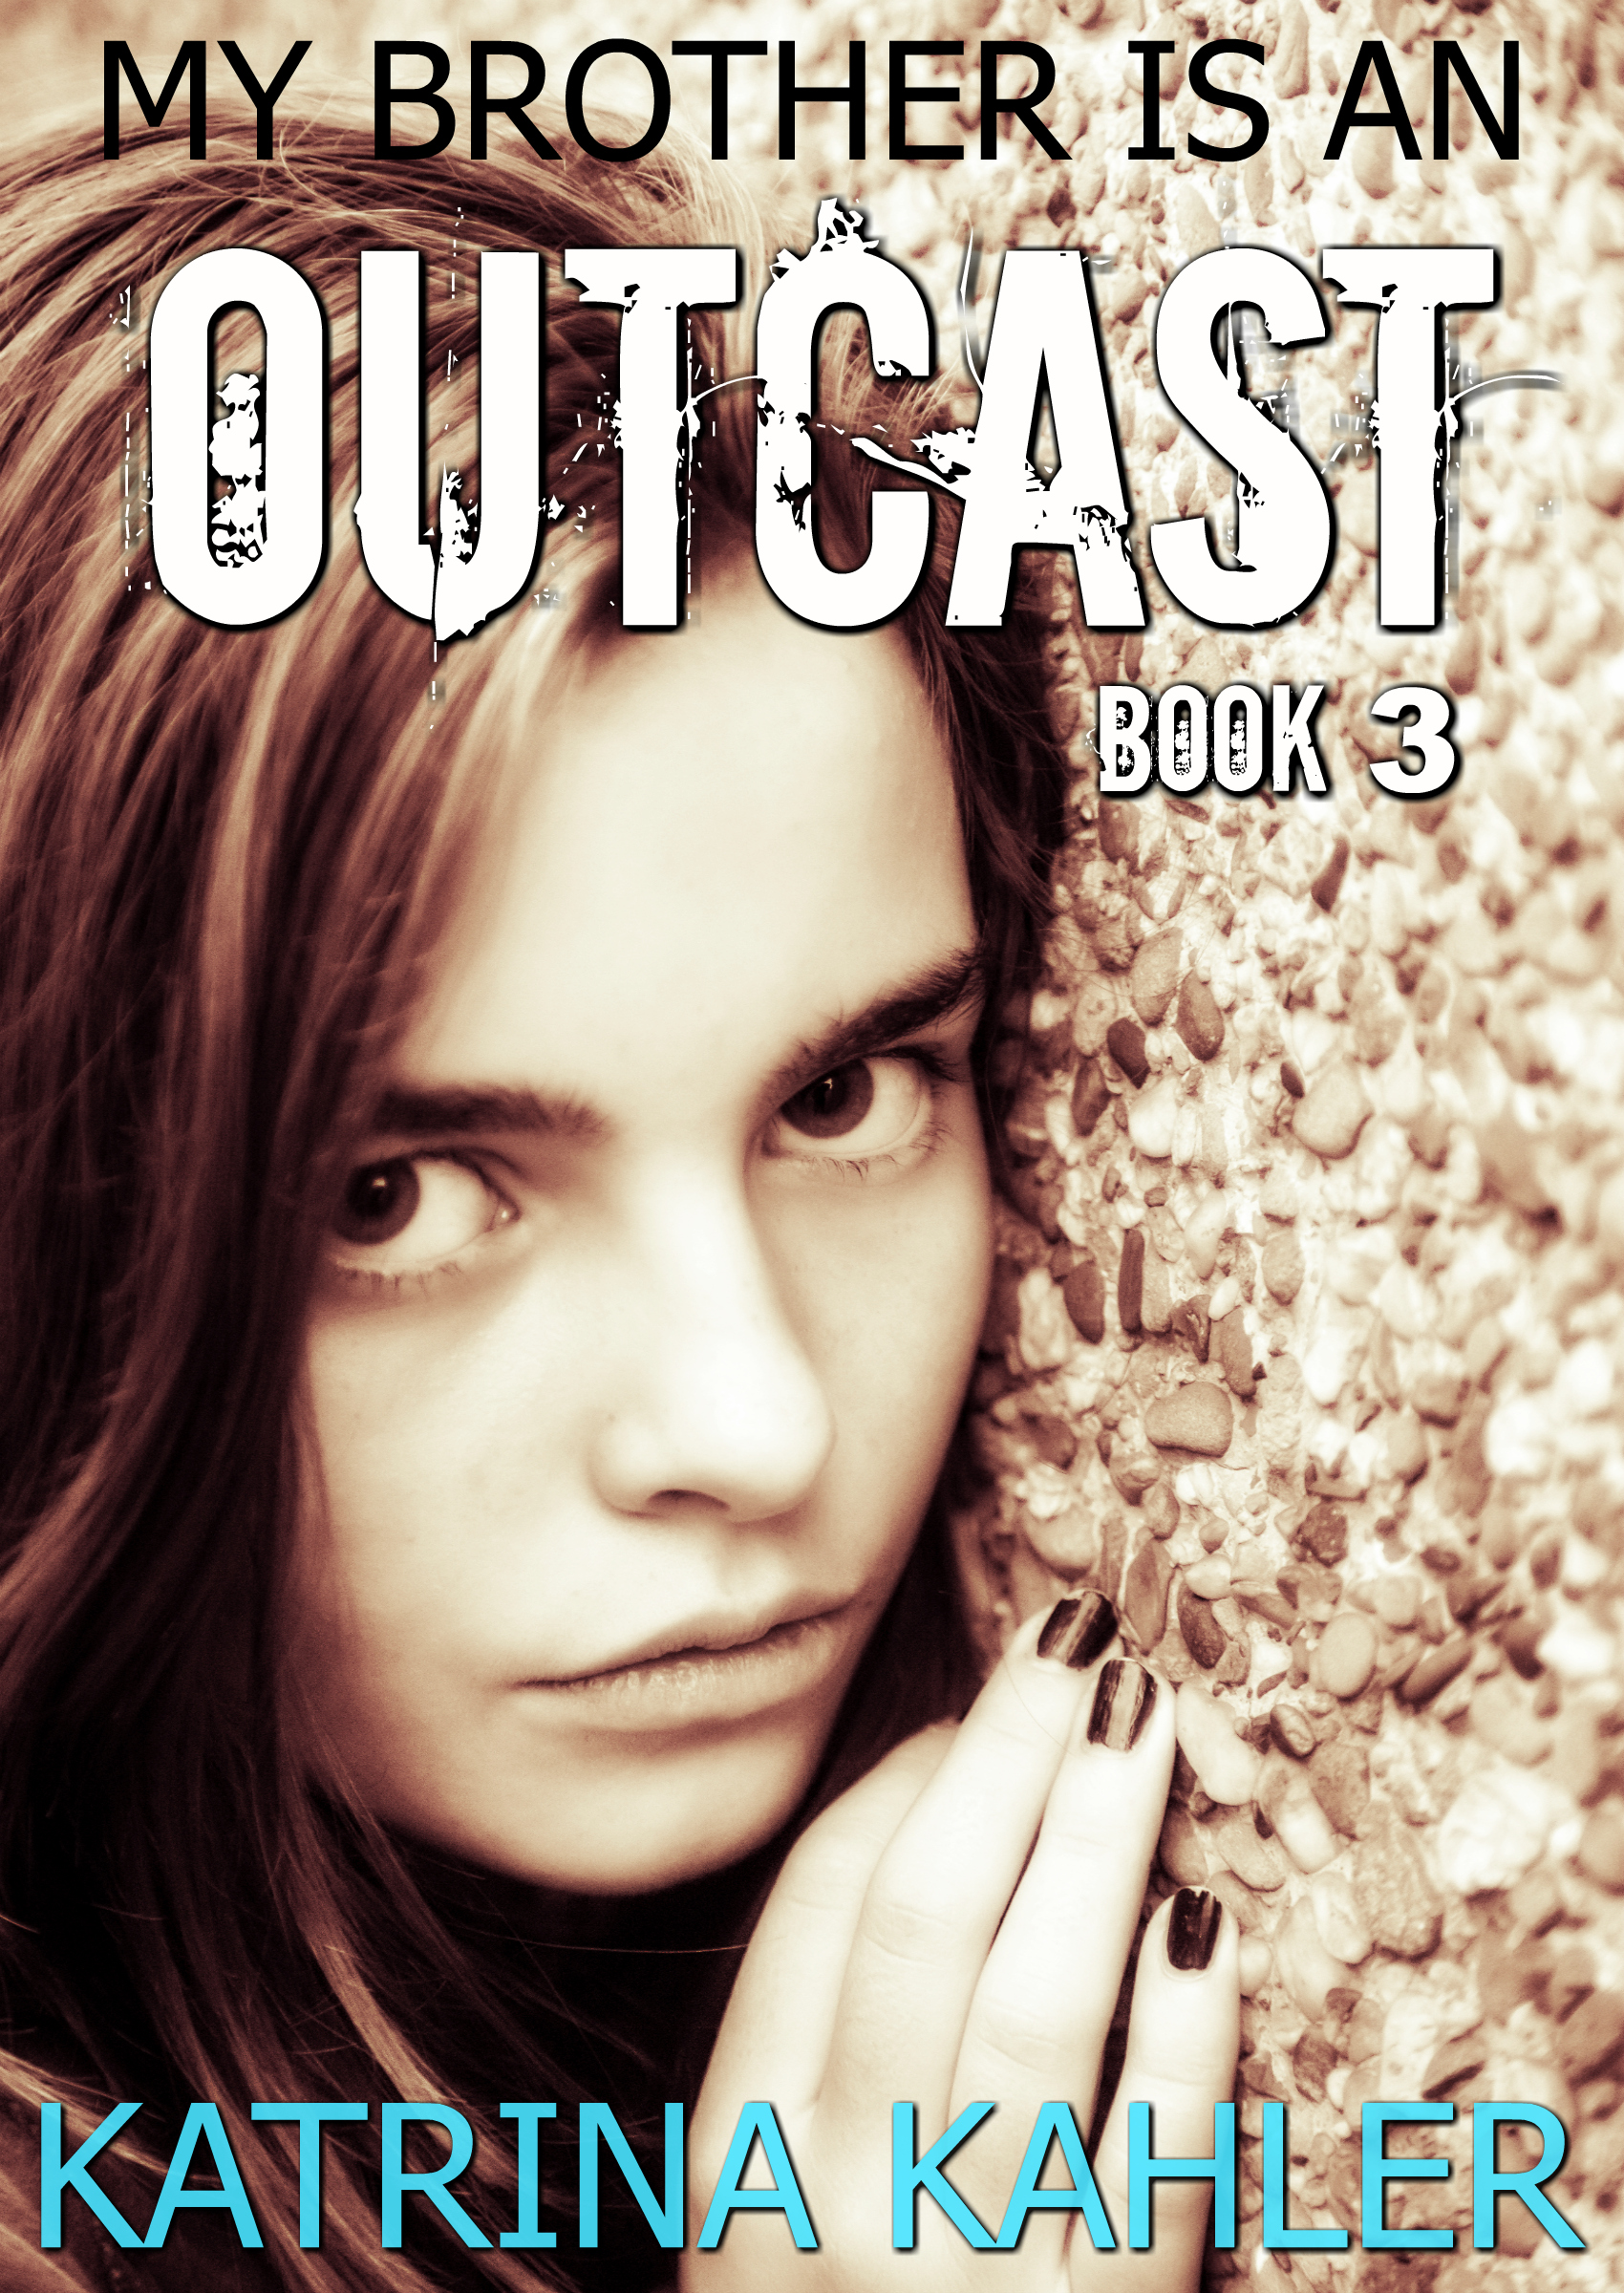 My brother is an outcast - book 3 - illusion: book for kids 12+: truth, courage and justice